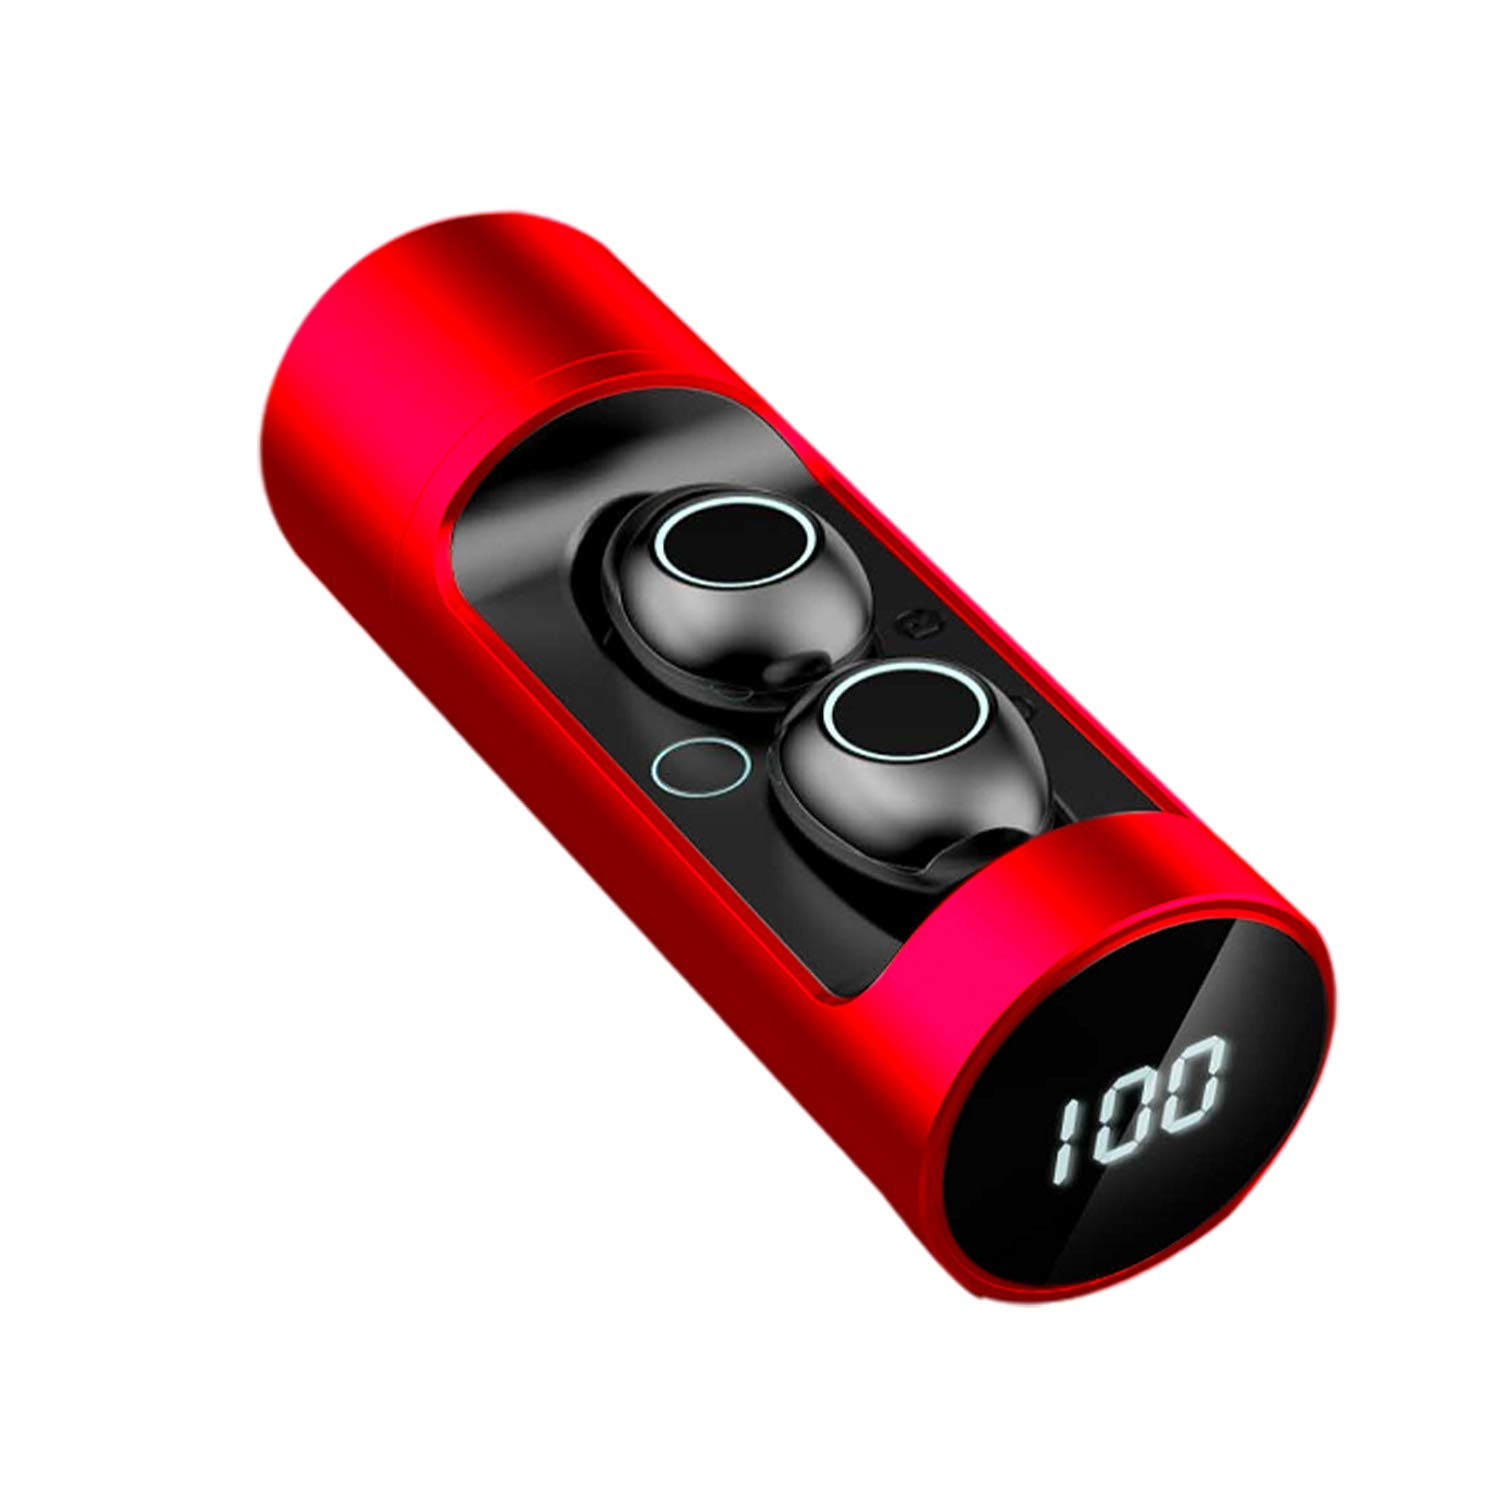 True Wireless Earbuds,Bluetooth 5.0 Stereo Sport Headsets Digital Display Rotatable Battery Case (Red)